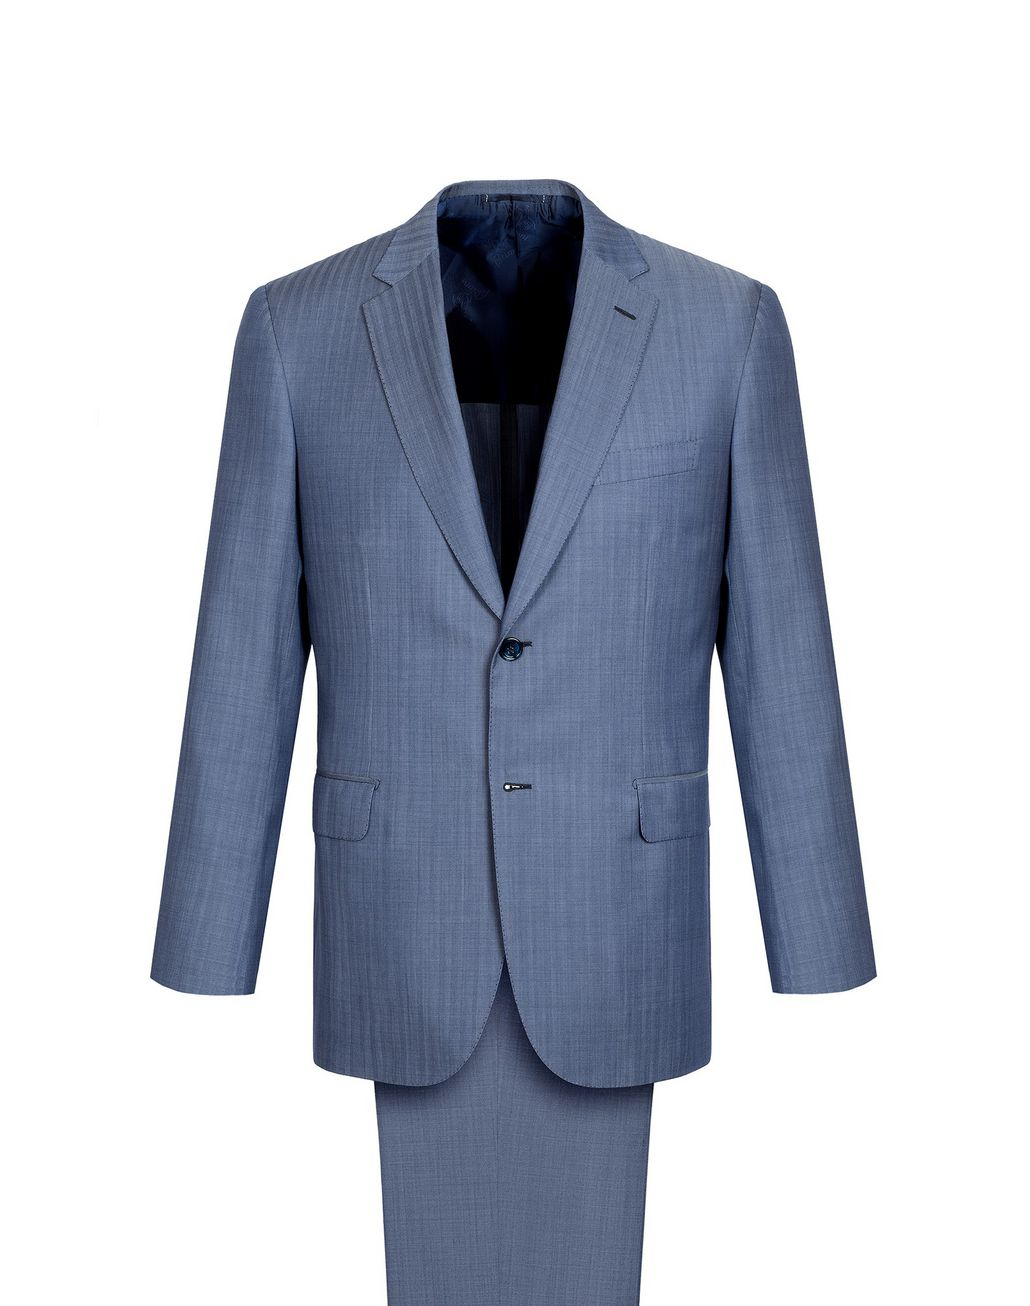 BRIONI Light Blue Micro-Herringbone Ravello Suit   Suits & Jackets [*** pickupInStoreShippingNotGuaranteed_info ***] f